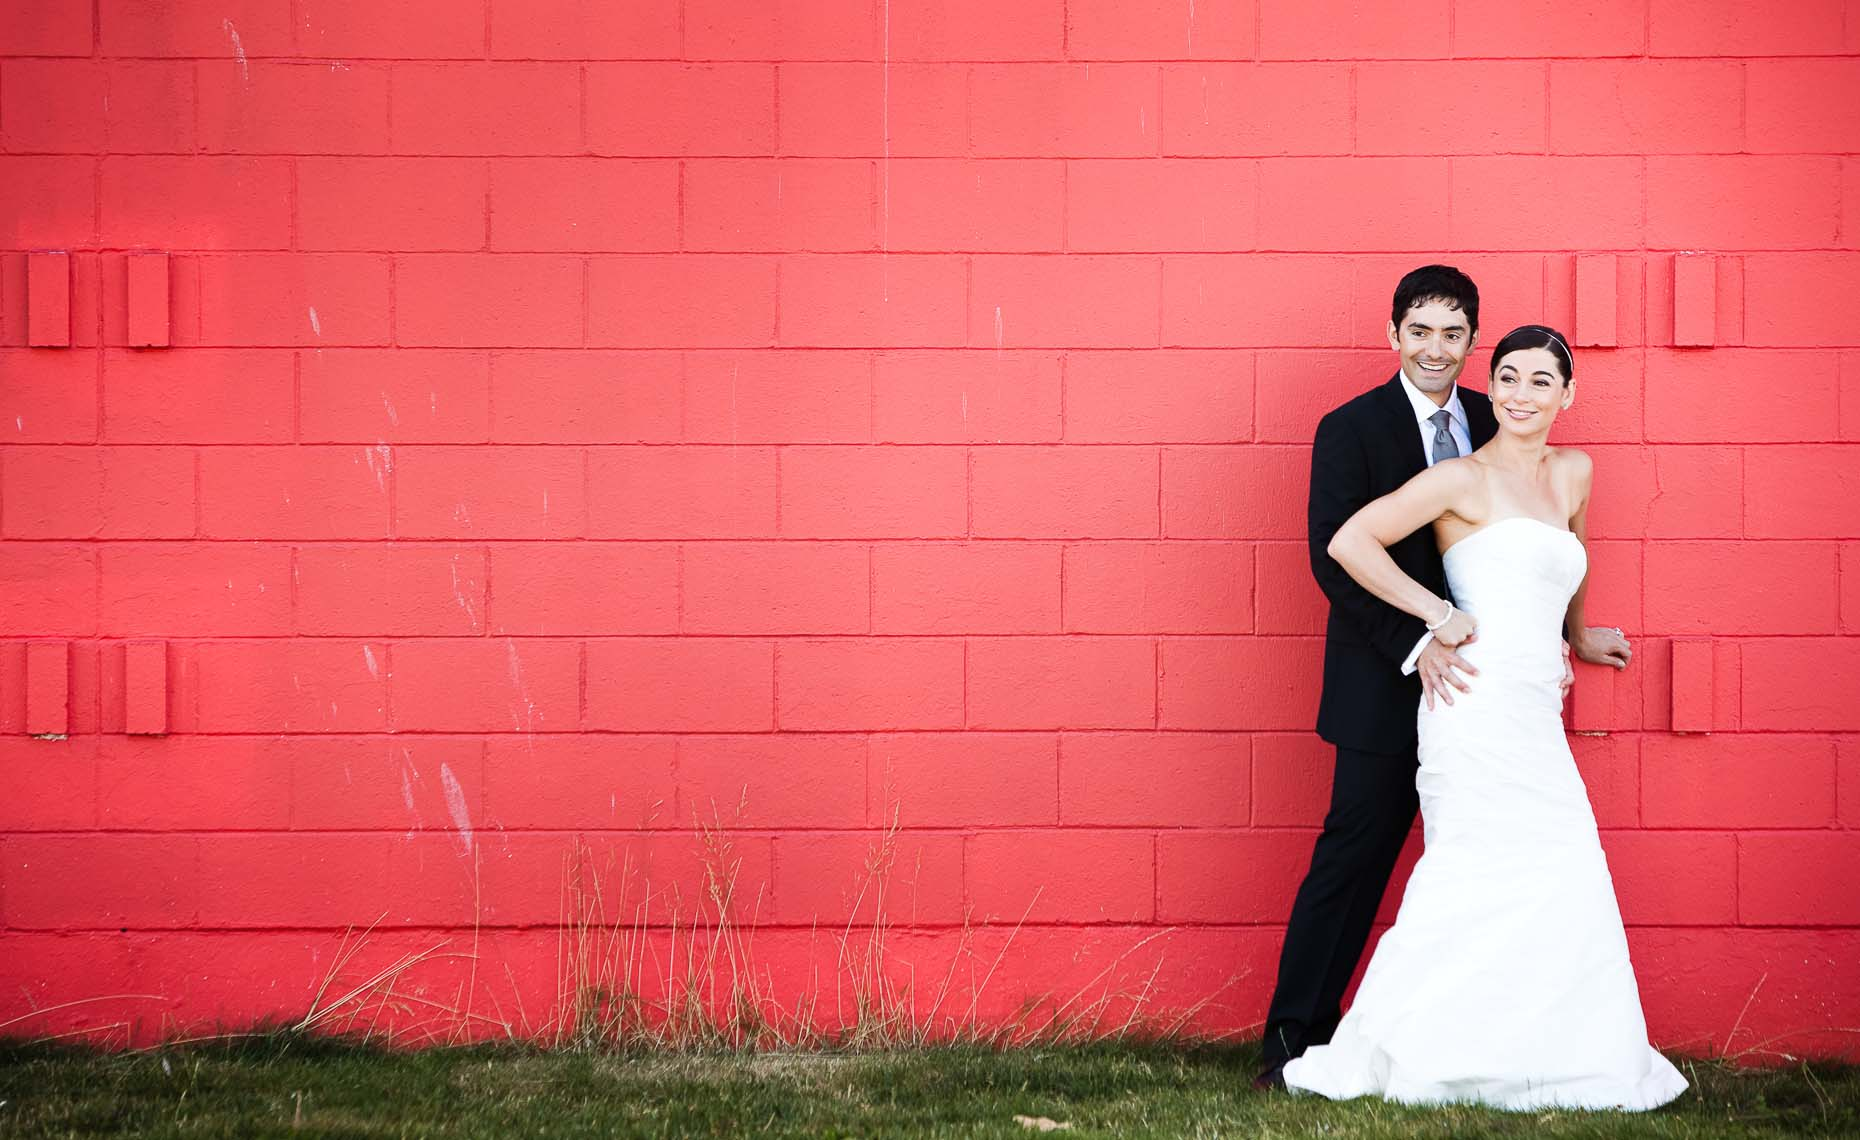 bride and groom colorful portrait in vancouver wedding photo